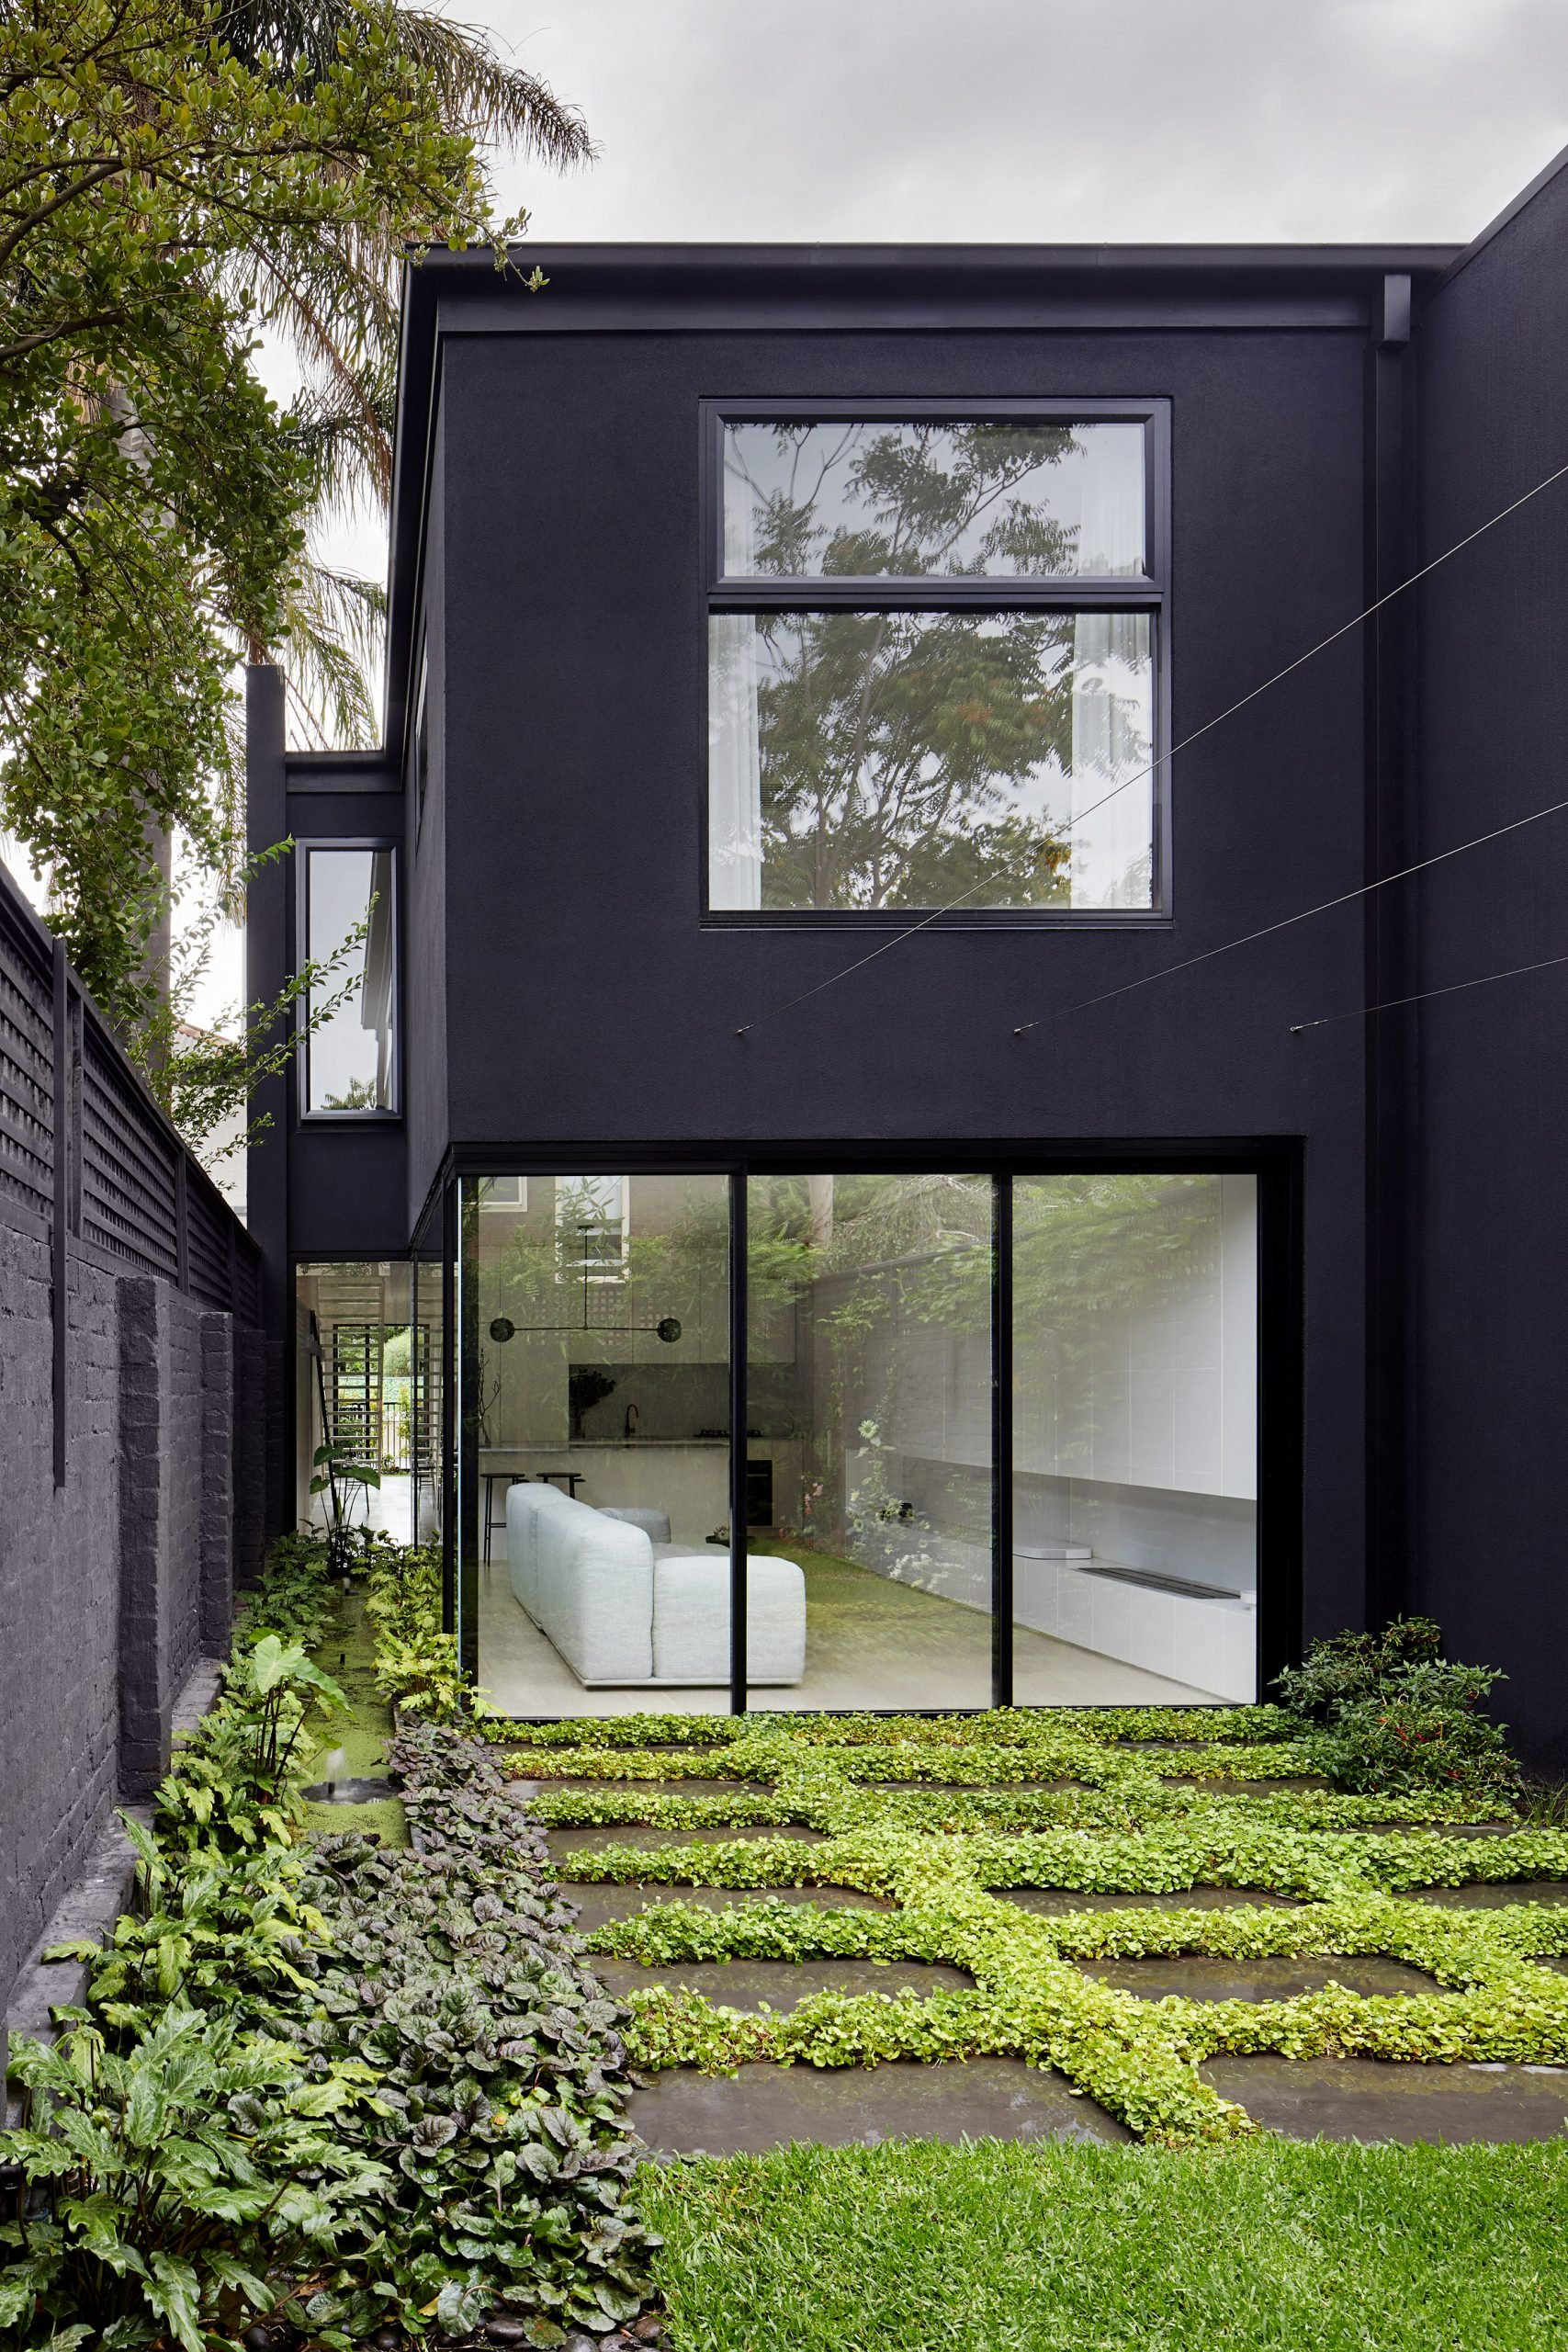 South Yarra Townhouse in Melbourne refurbished by Winter Architecture